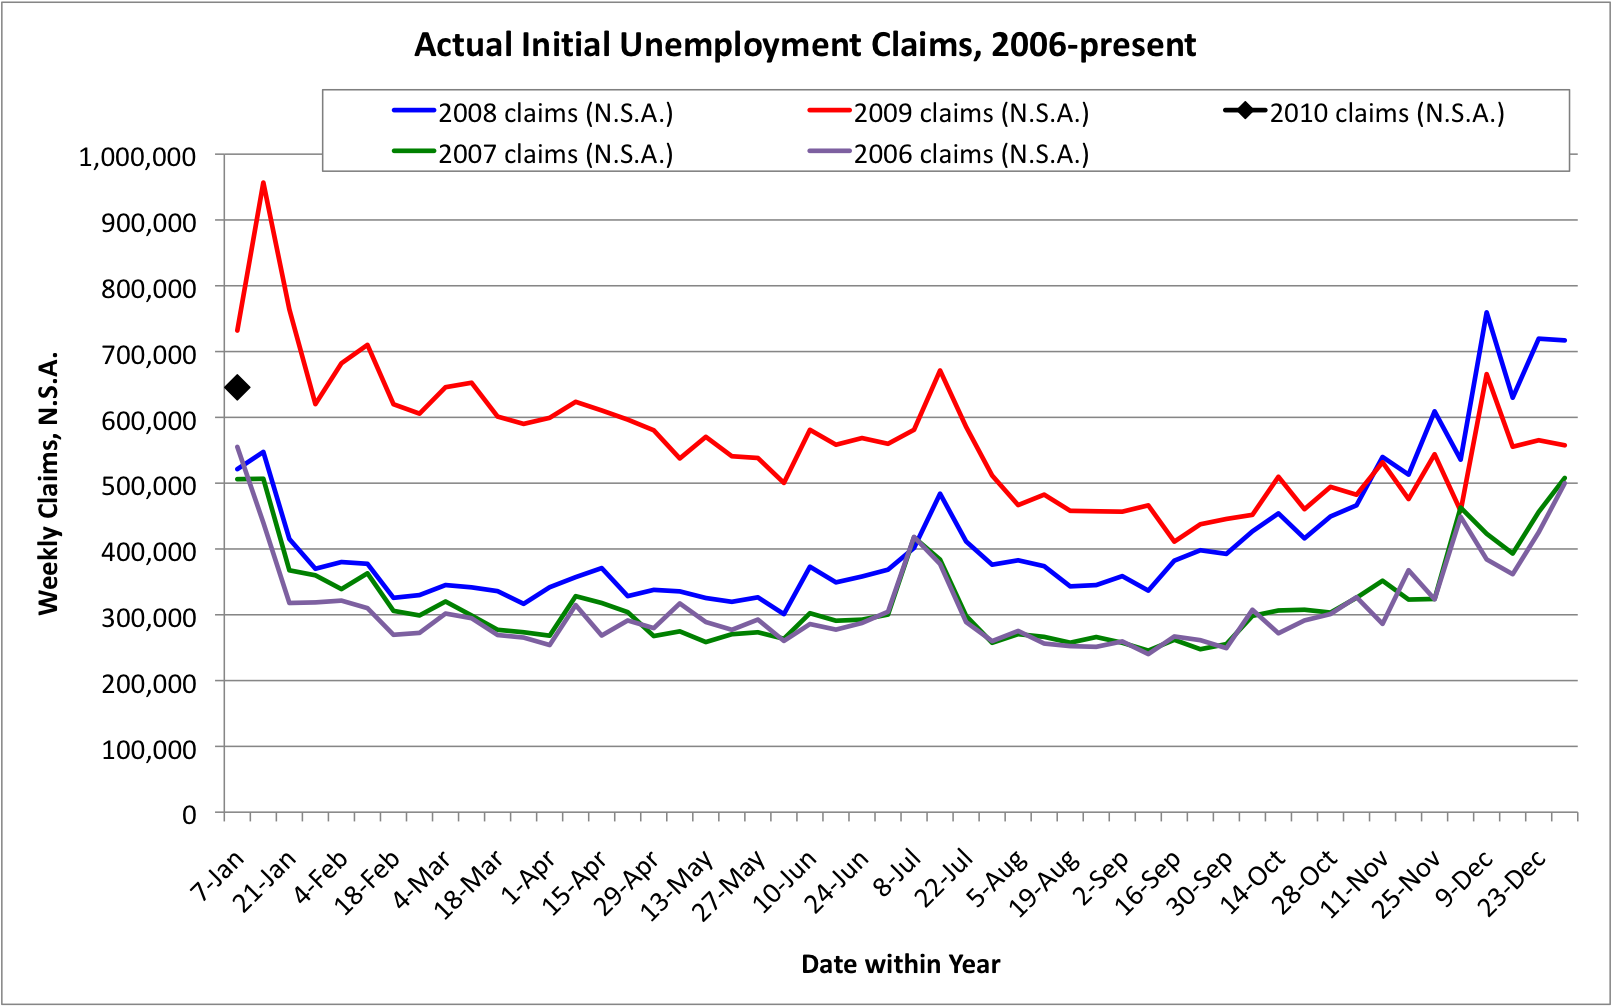 Weekly Unemployment Claims, 2006-2009, Not Seasonally Adjusted